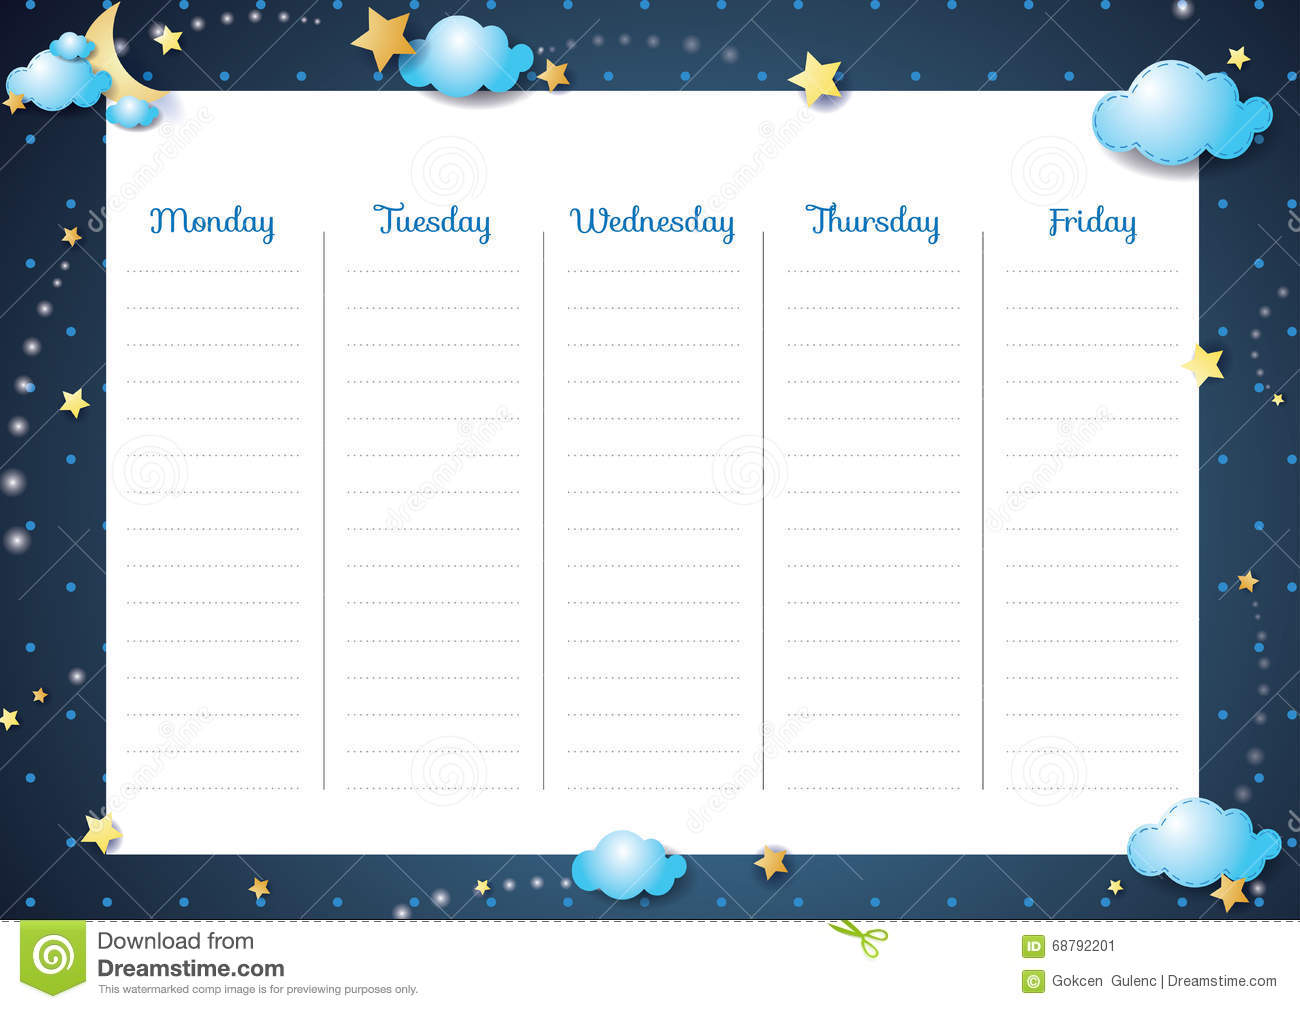 Cute Weekly Planner-Night Theme Stock Vector - Illustration of moon ...